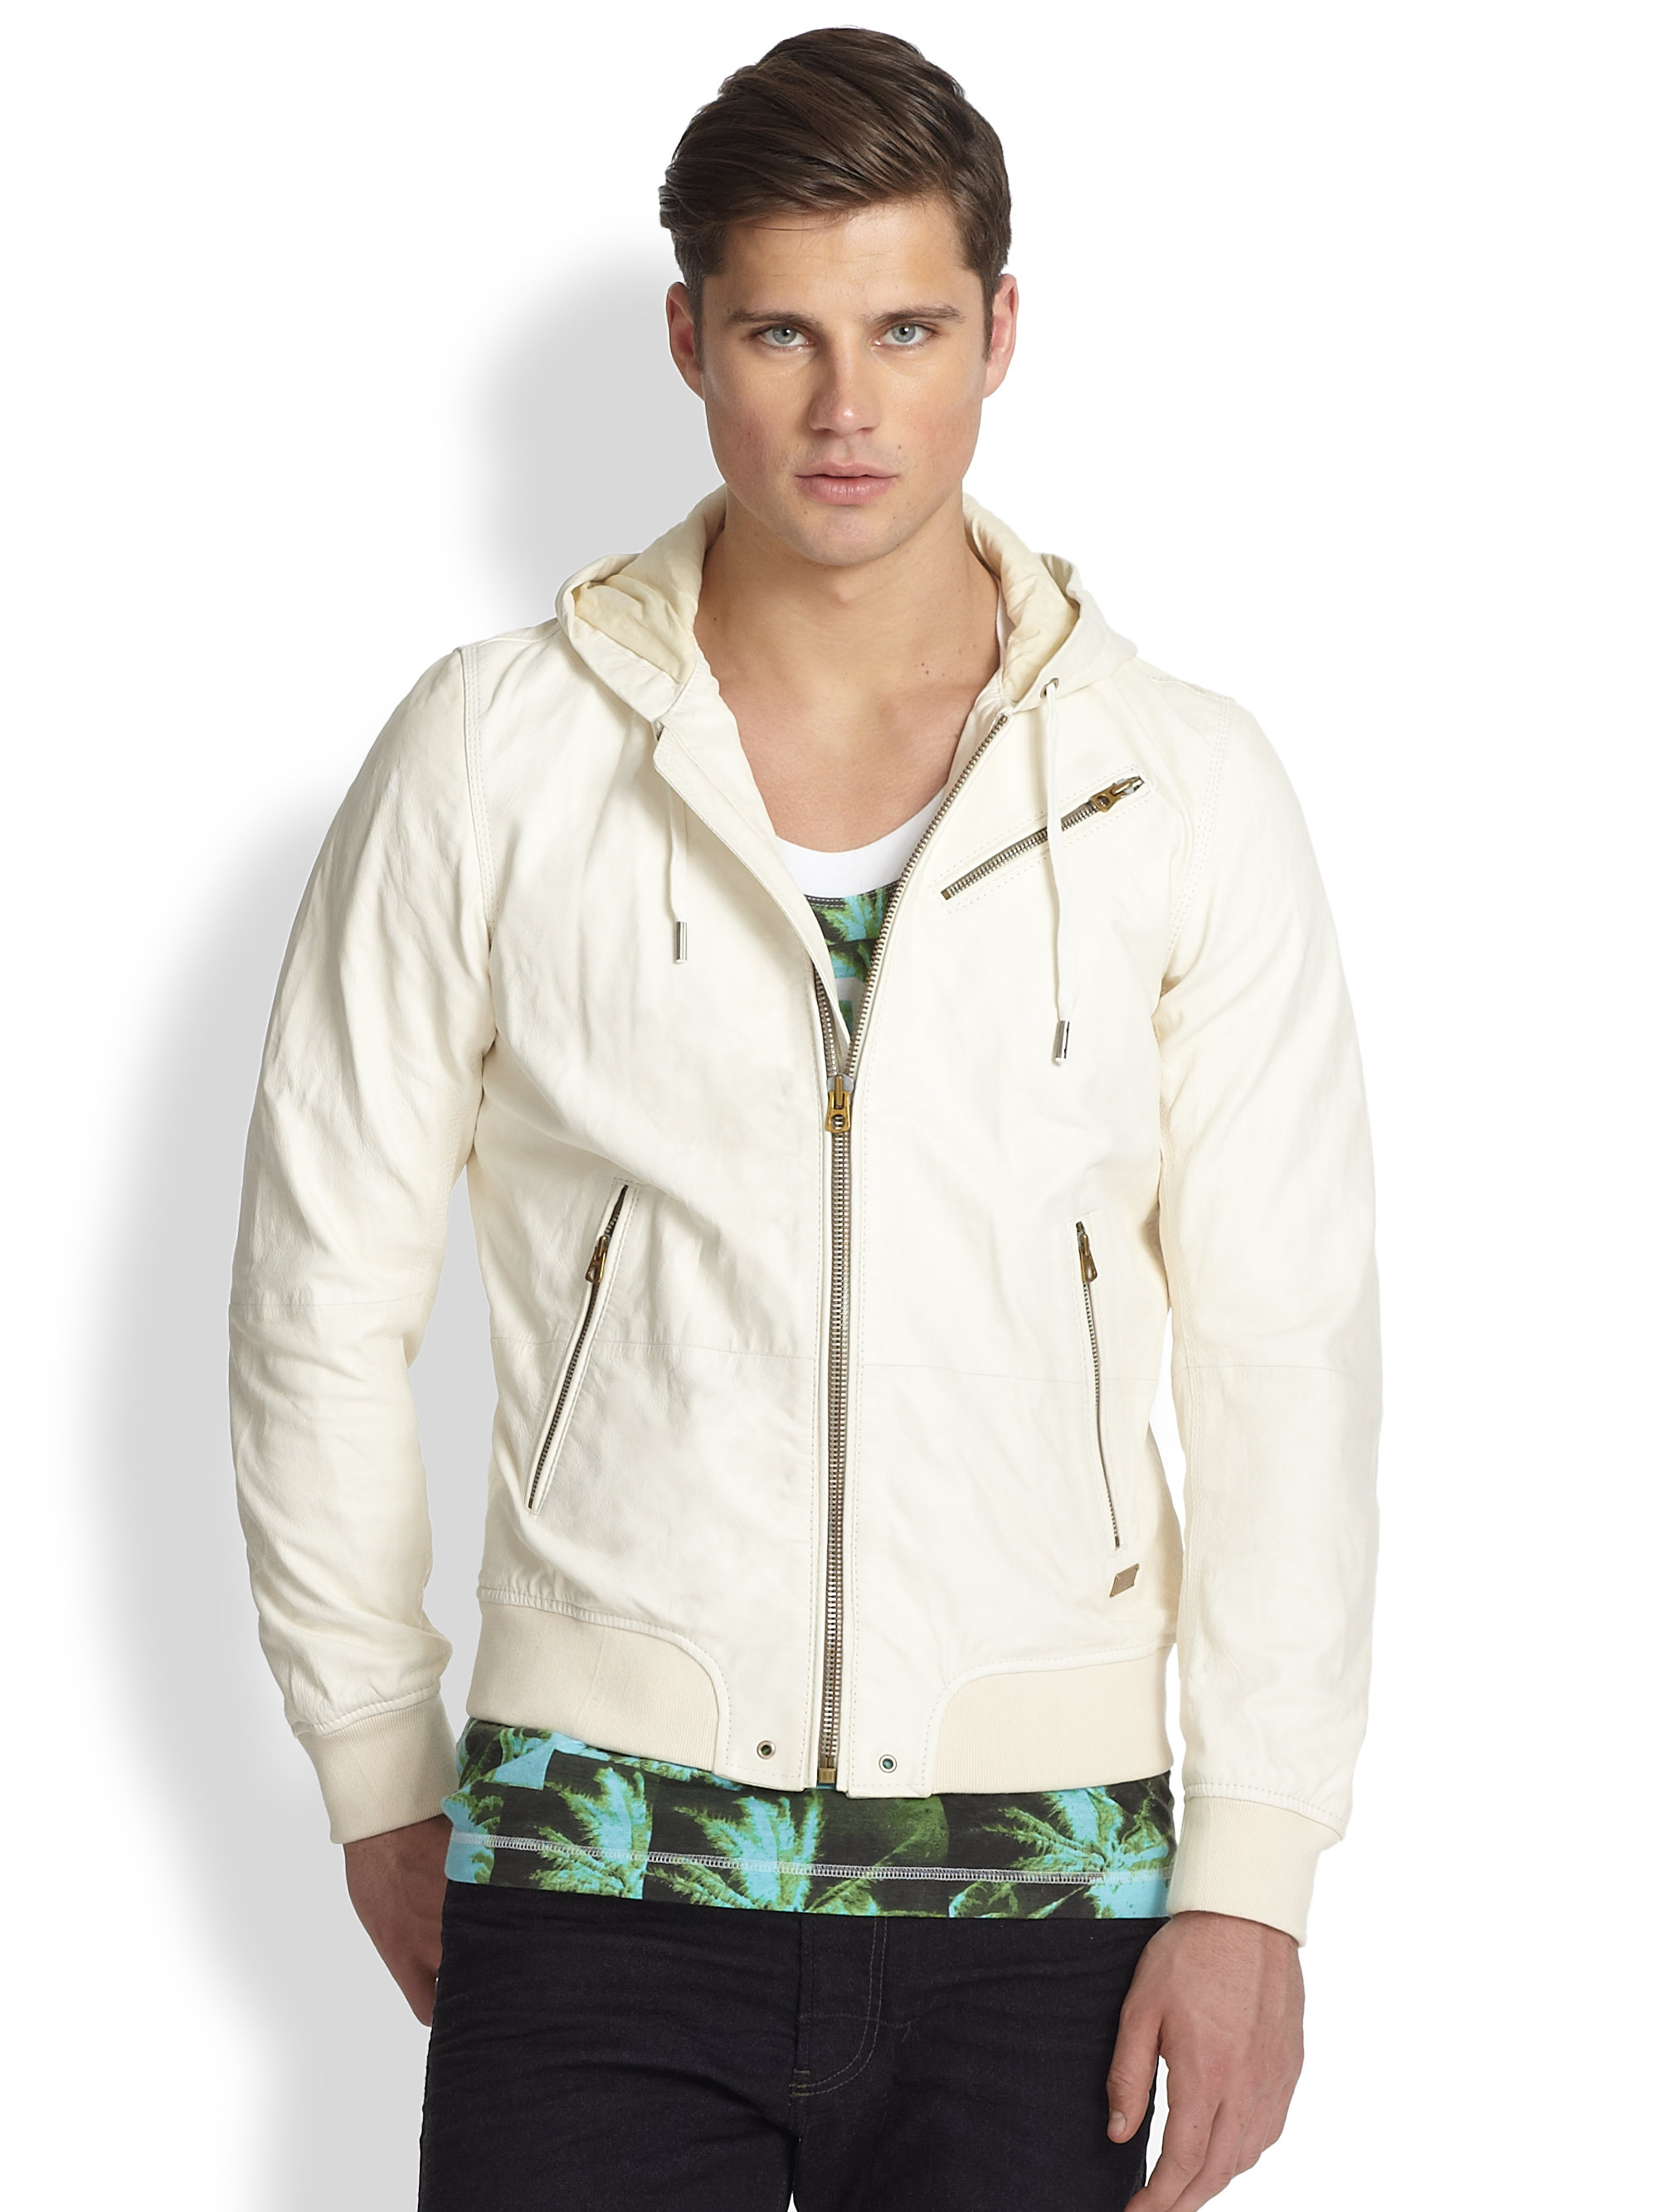 White leather jacket for men